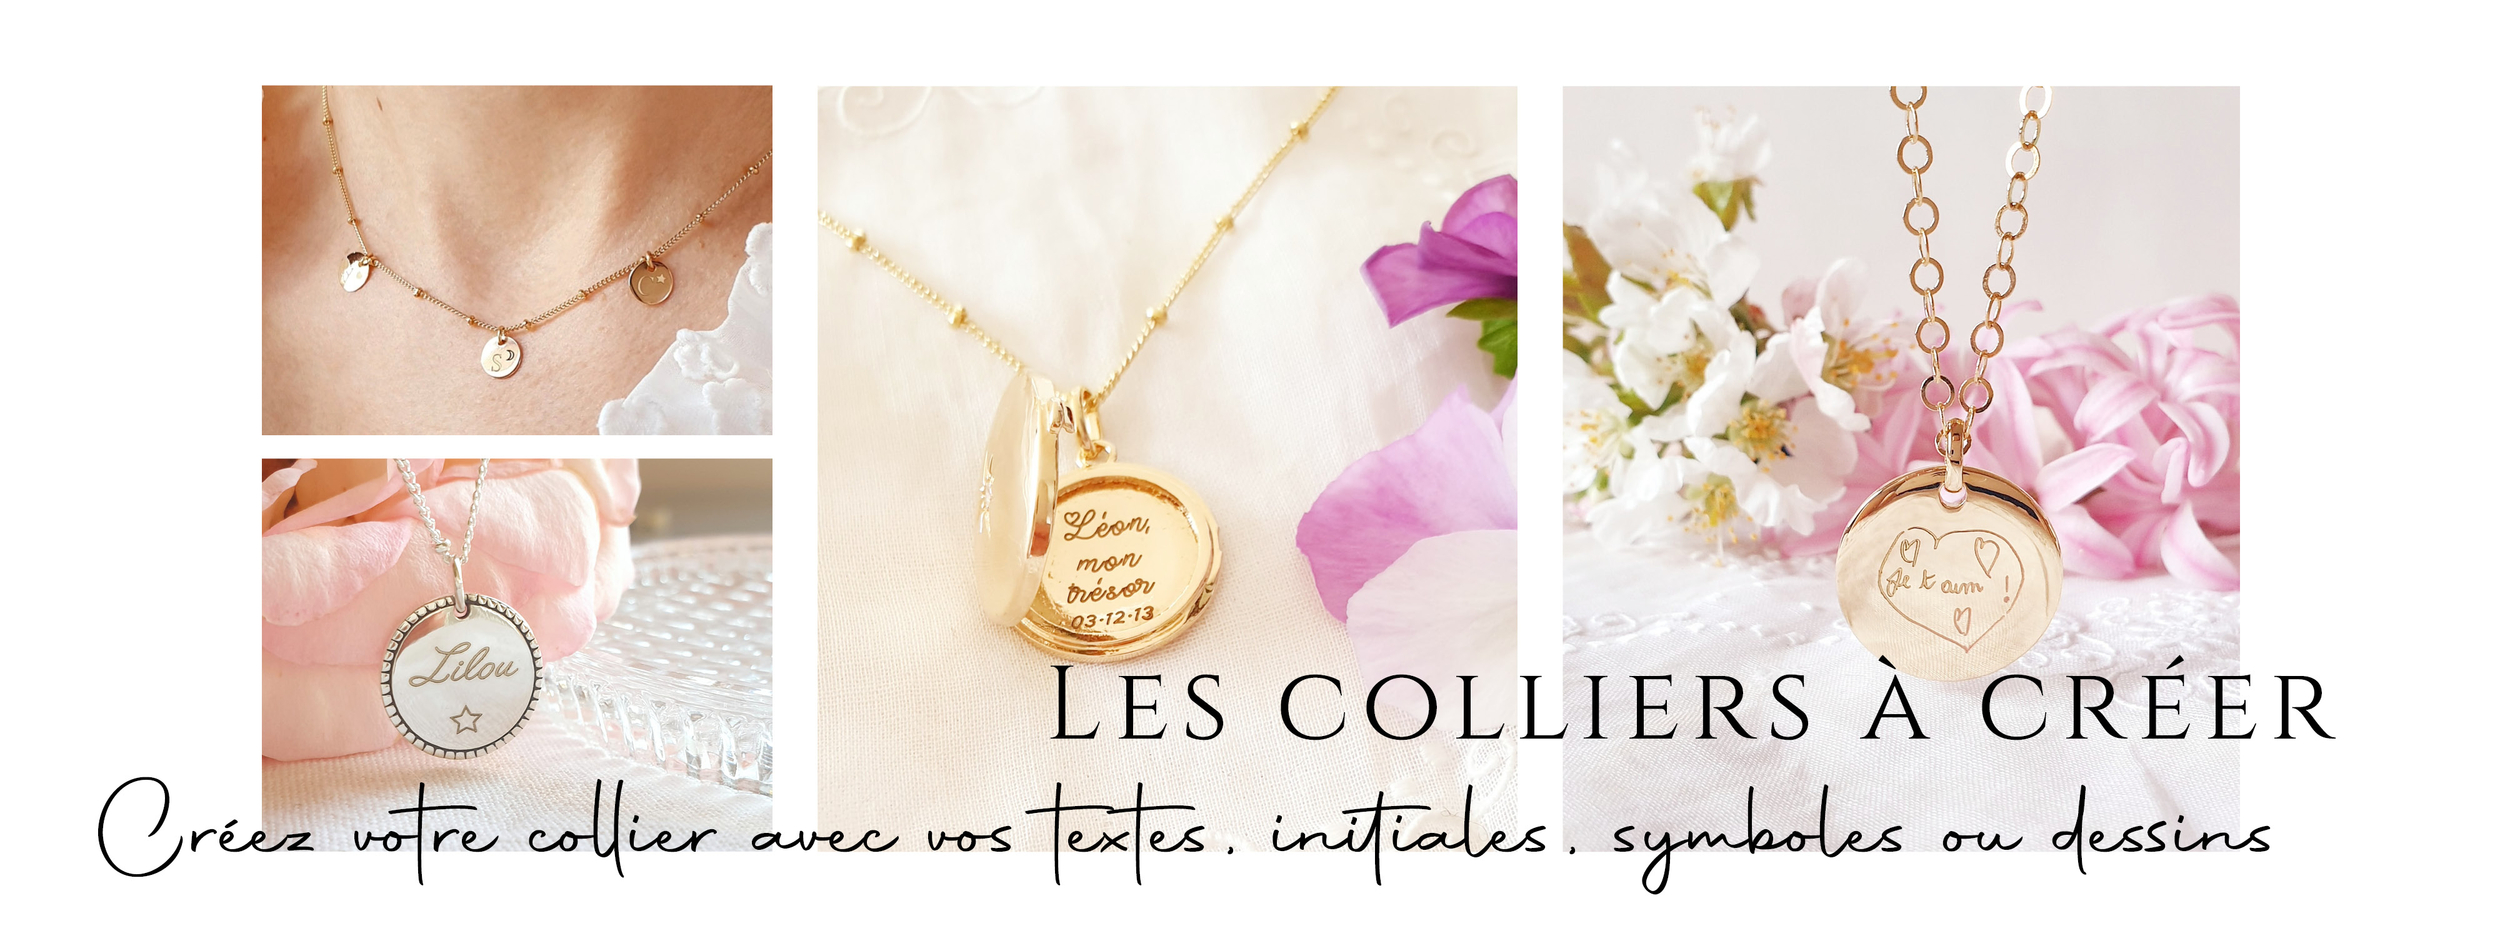 bandeau page collier collier a creer